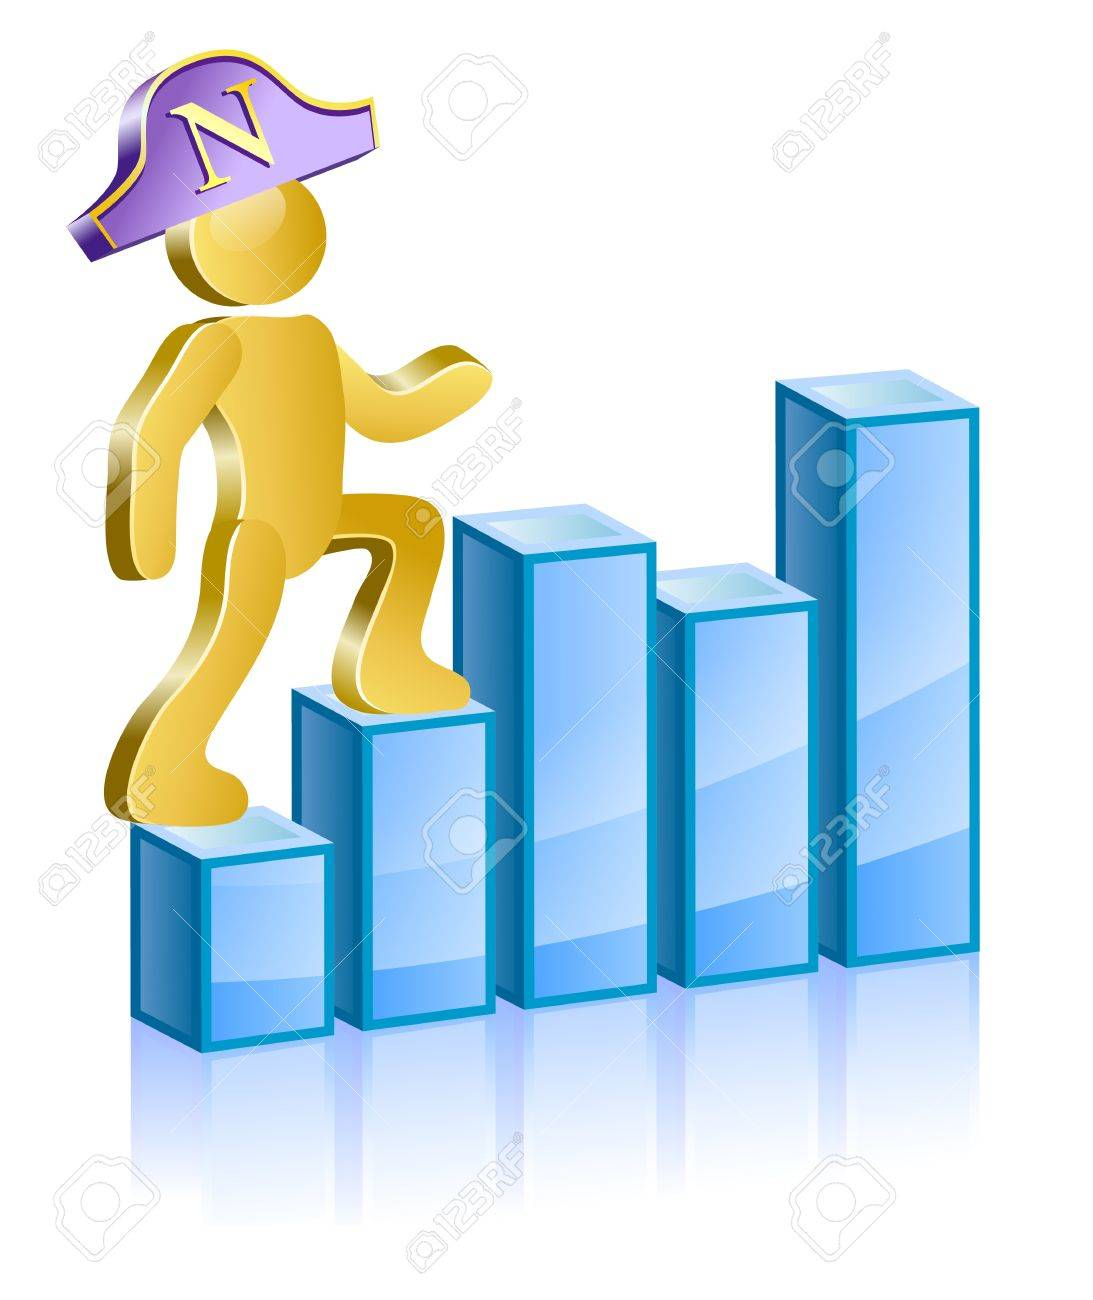 human in a suit napoleons moving up the ladder stock vector 17754737